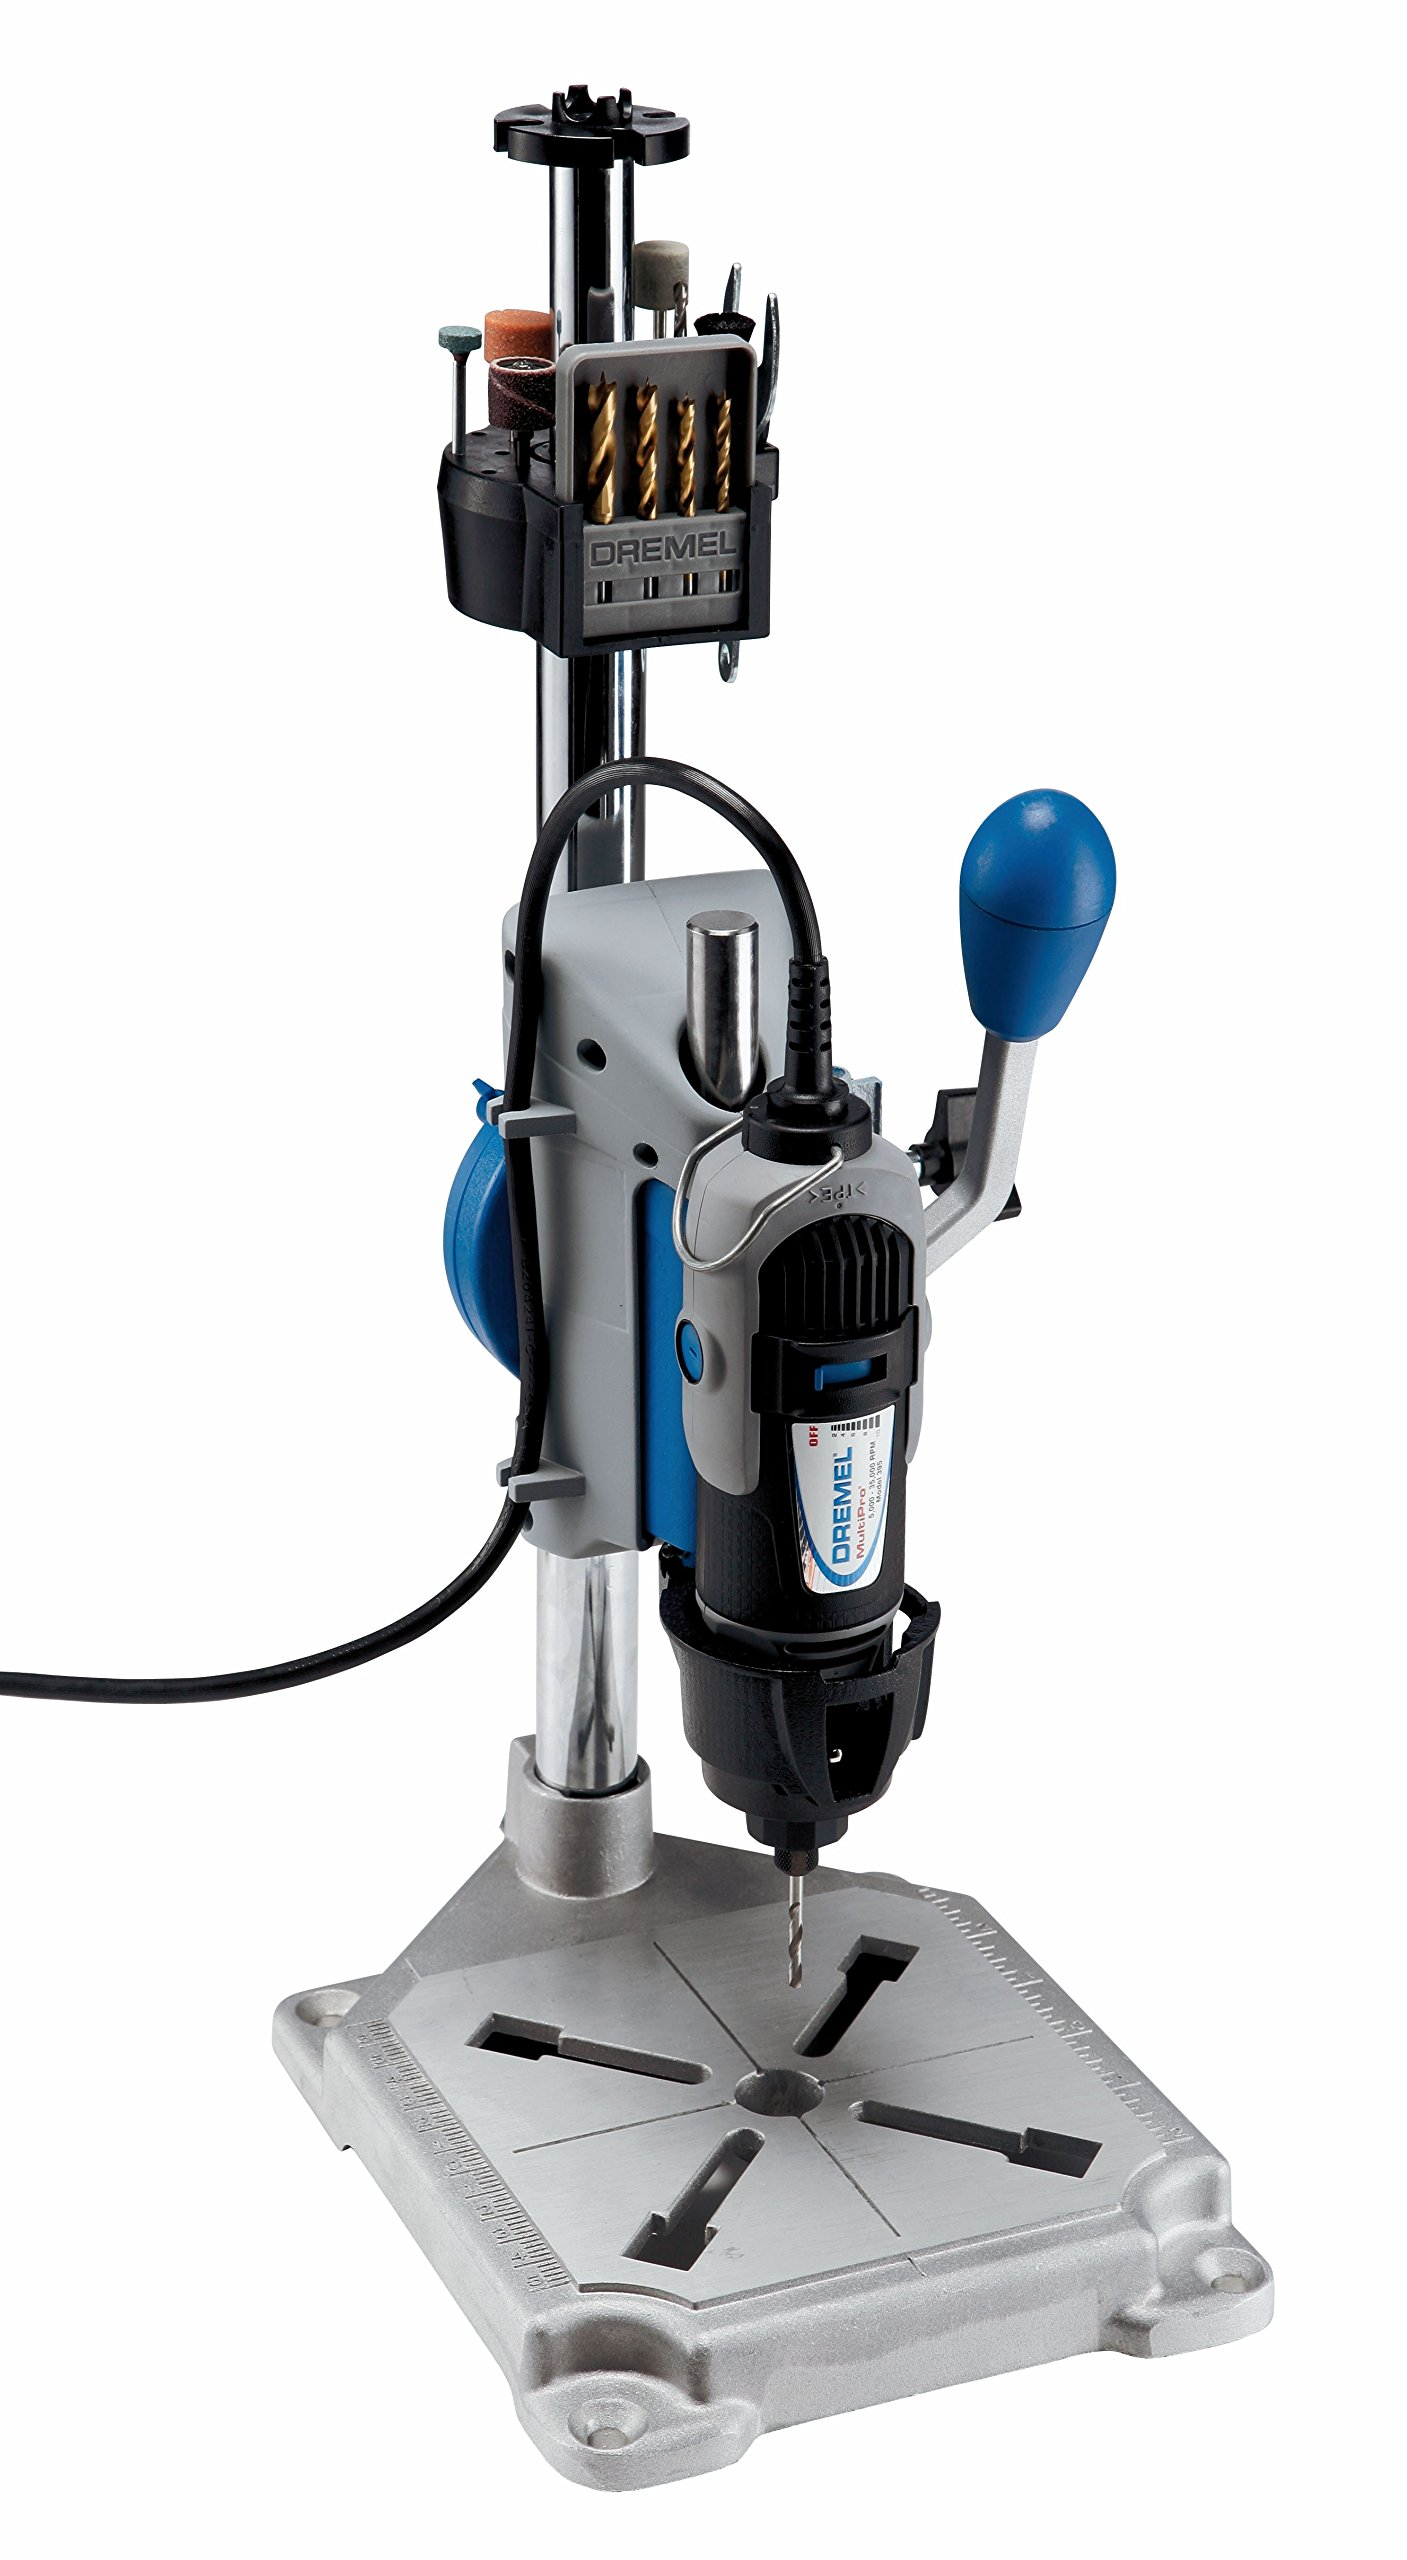 Dremel 220-01 Rotary Tool Work Station with MultiPro Keyless Chuck by Dremel (Image #1)